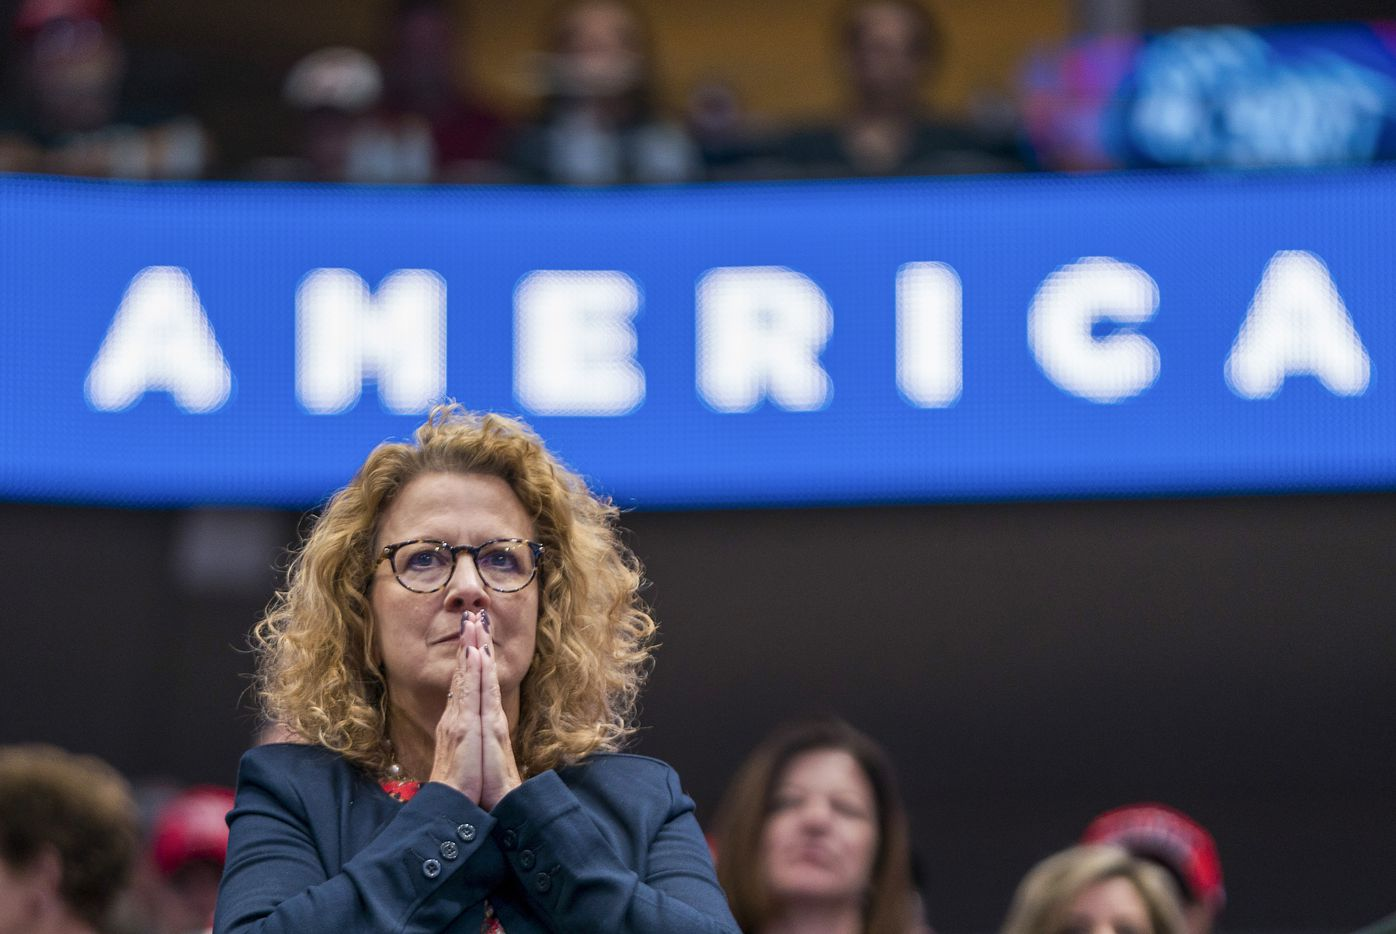 A woman listens as President Donald Trump speaks during a campaign rally at the American Airlines Center on Thursday, Oct. 17, 2019, in Dallas.